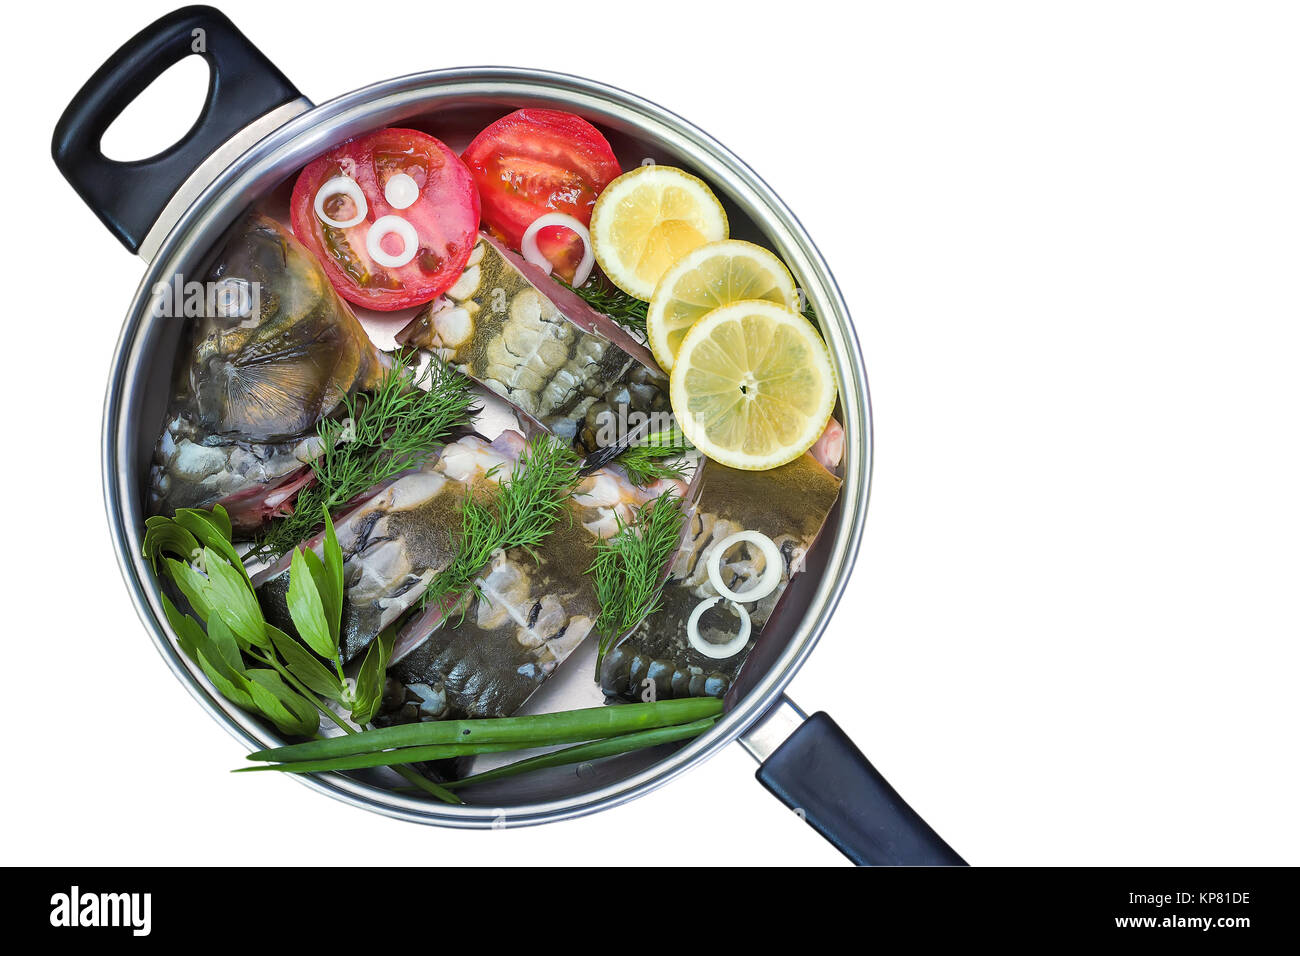 Fish and components for her preparation in a large skillet. - Stock Image